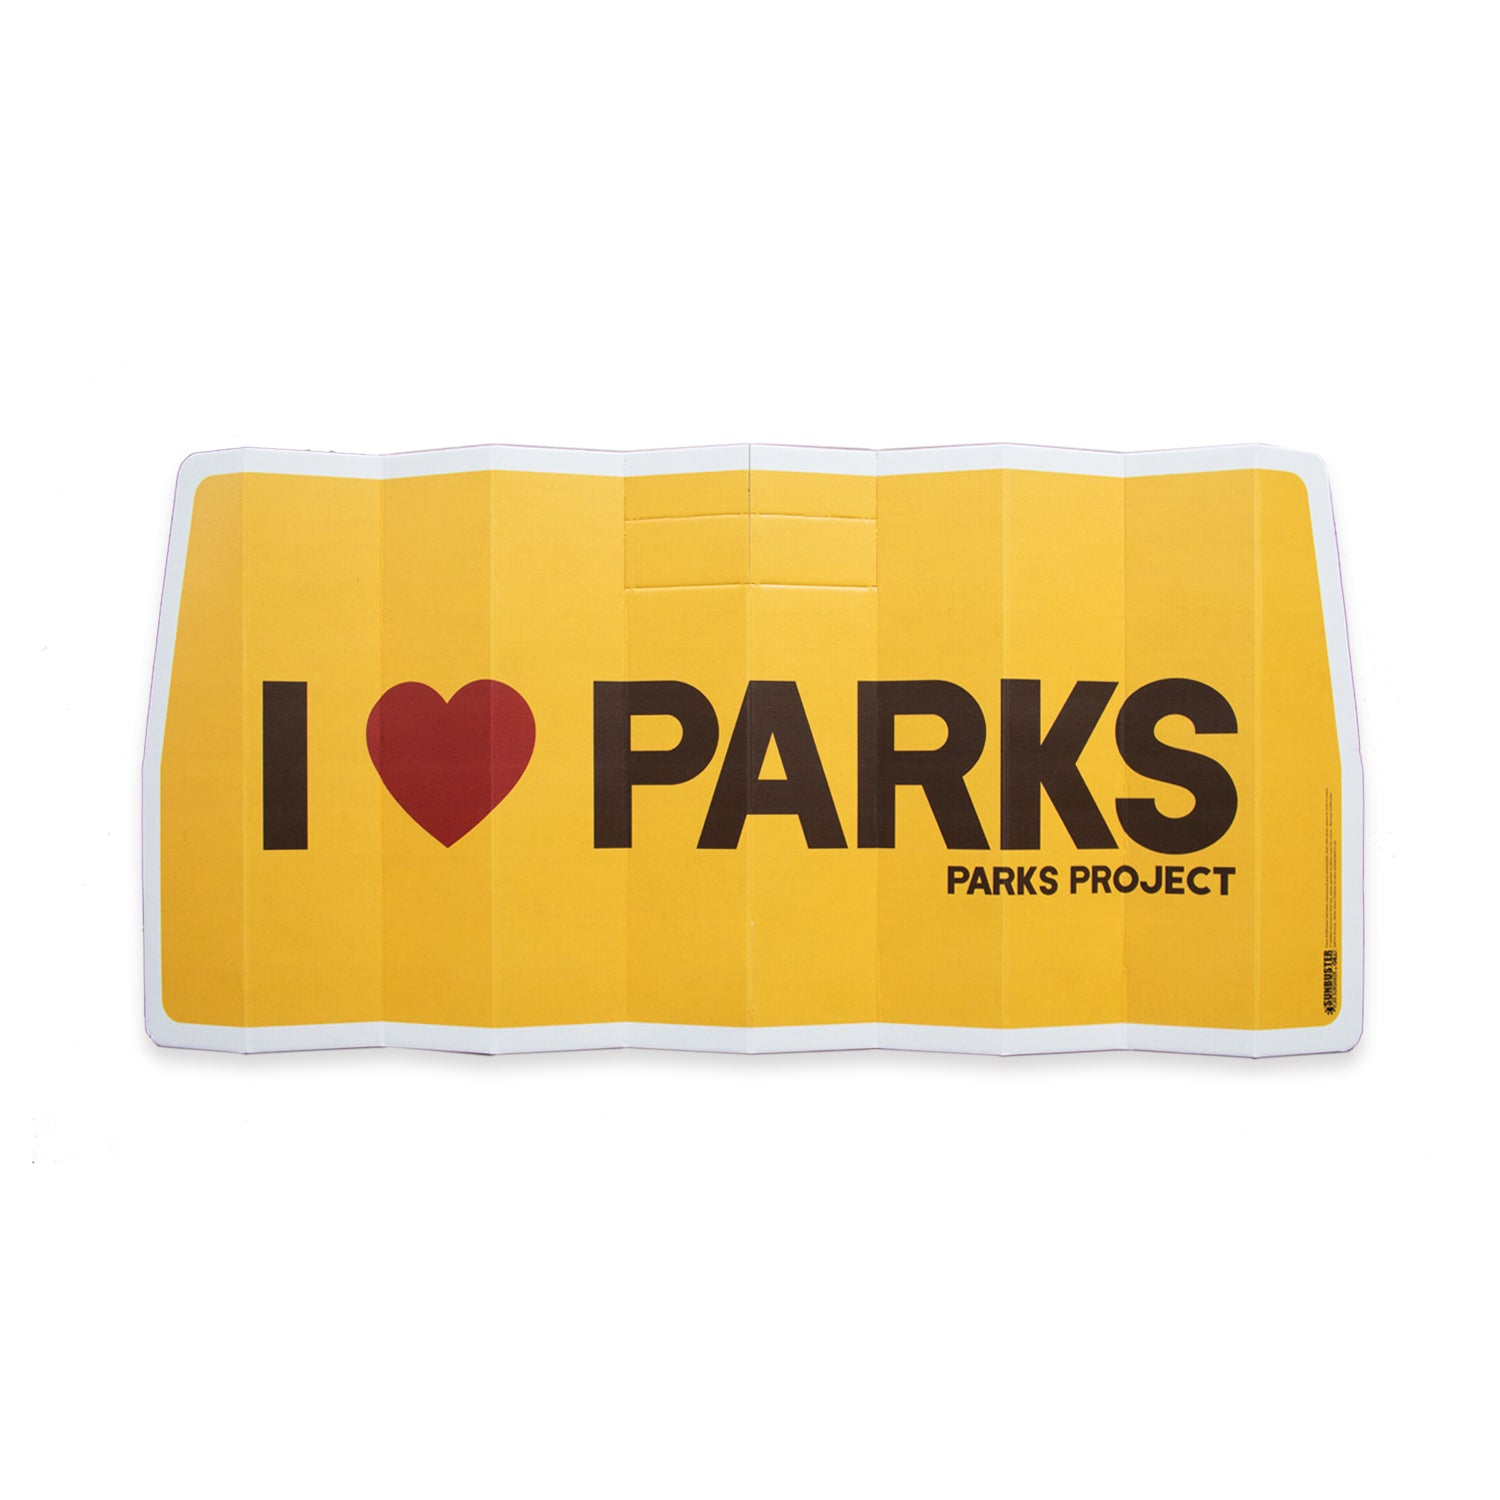 I Heart Parks Car Sunshade | Parks Project | National Park Gifts